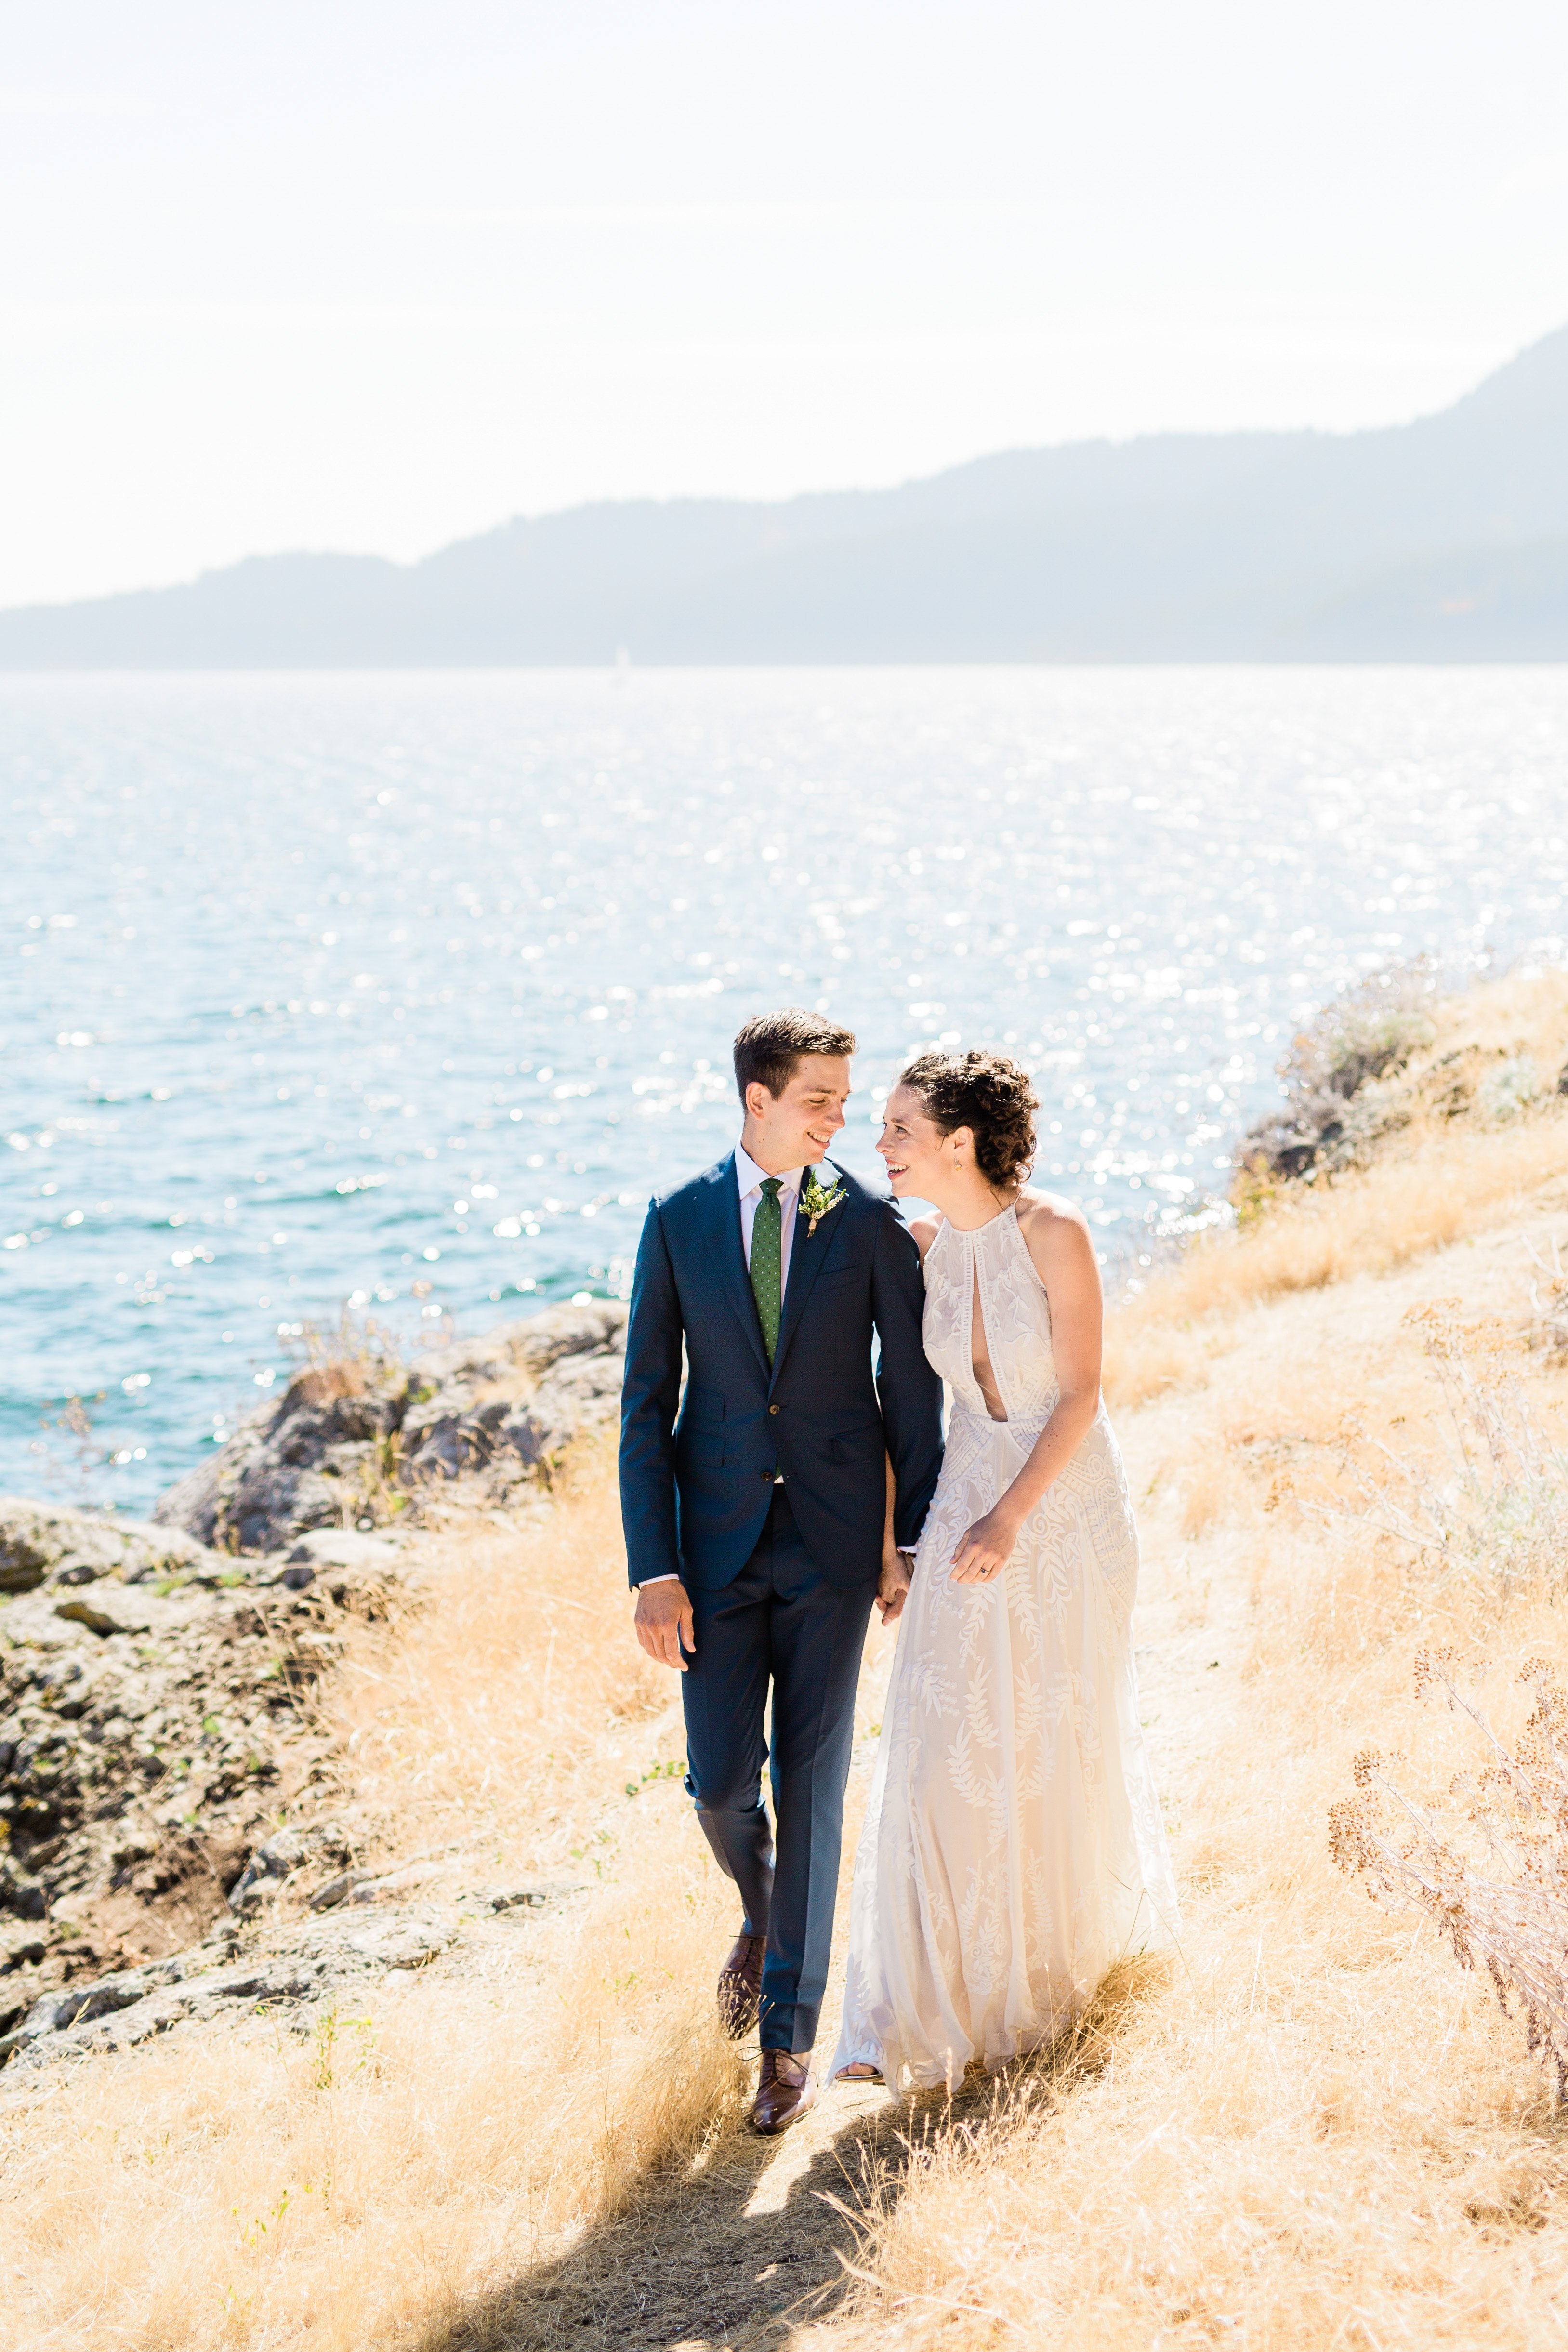 Sunny beach wedding photo by Cameron Zegers Photography - Seattle